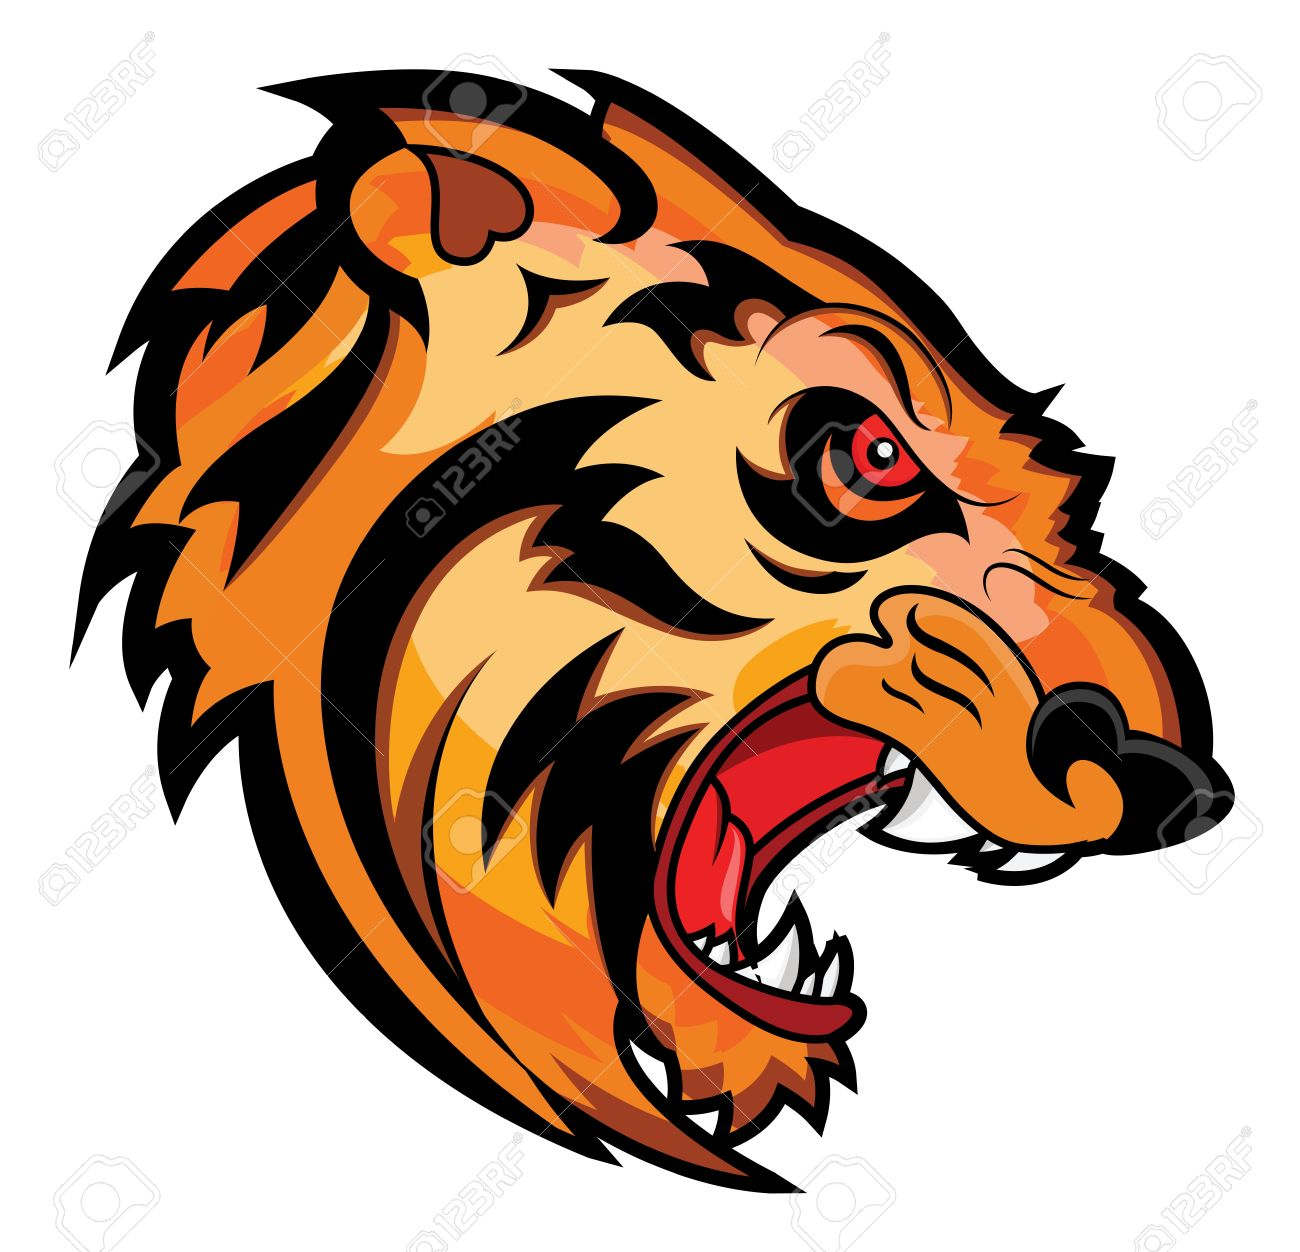 1300x1252 Drawn Tiger Angry Lion Face